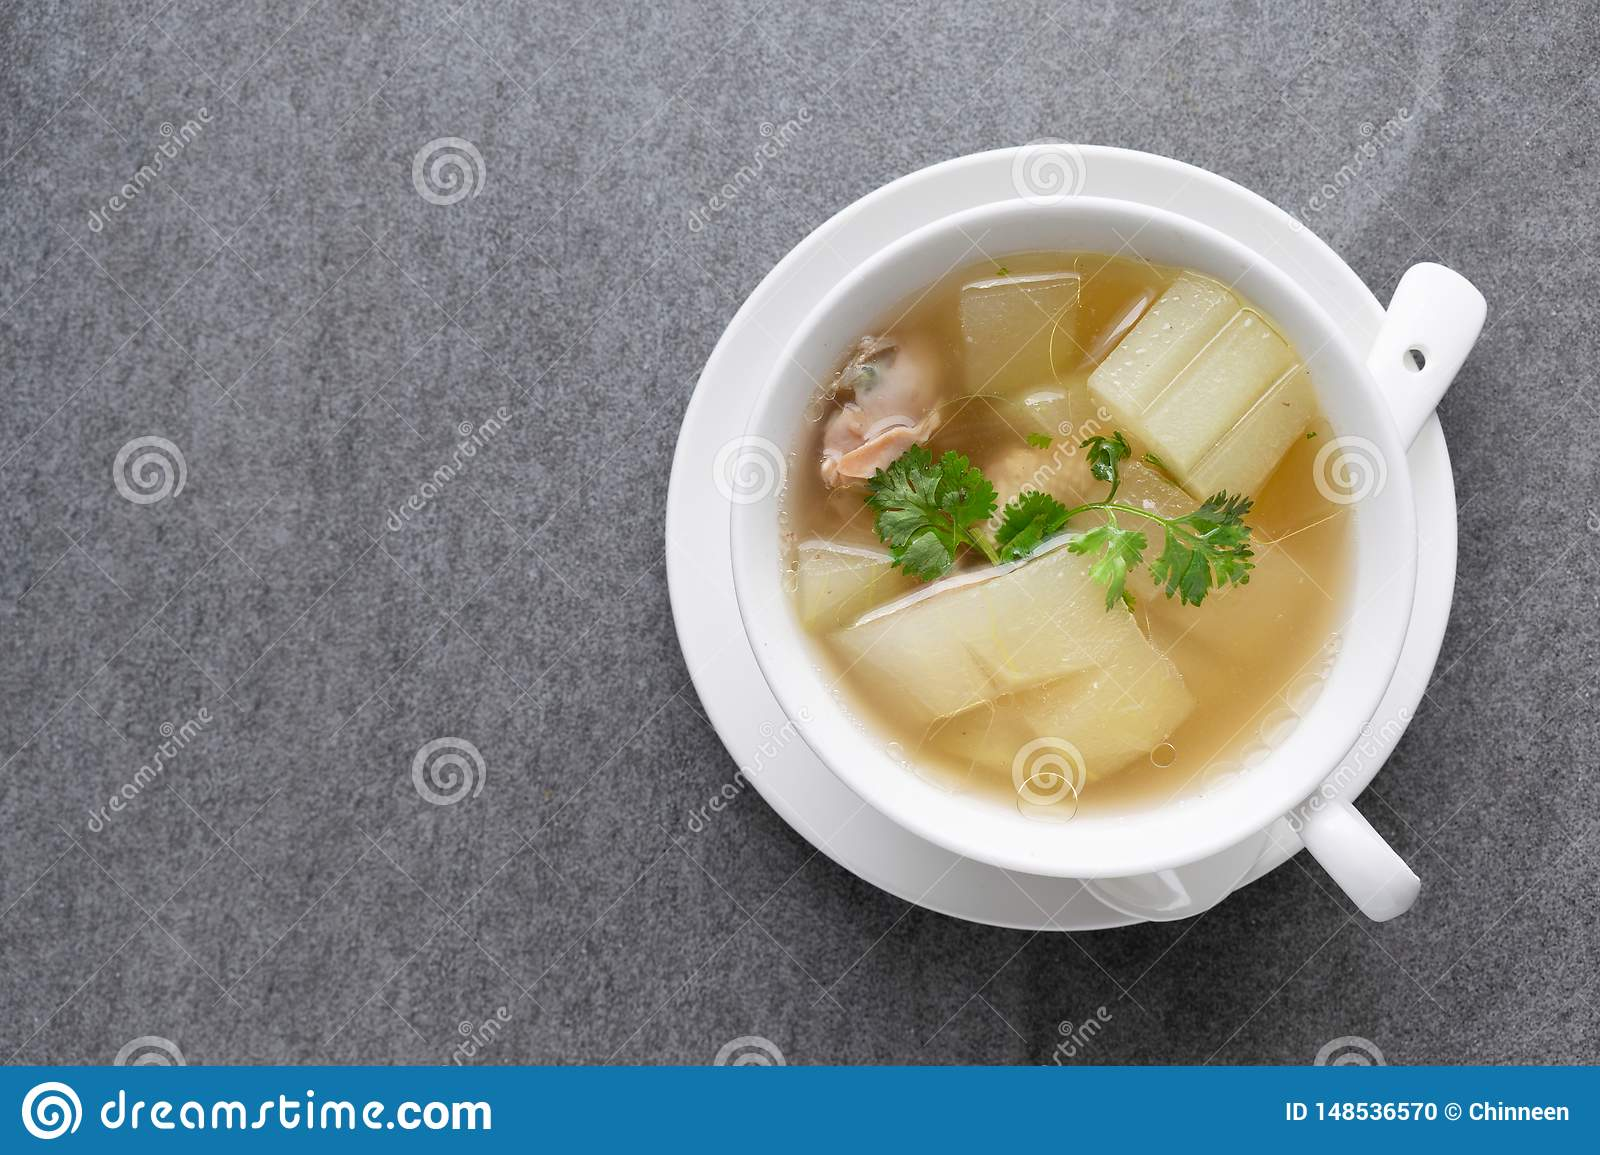 Boiled winter melon soup with chicken rib in white bowl on table